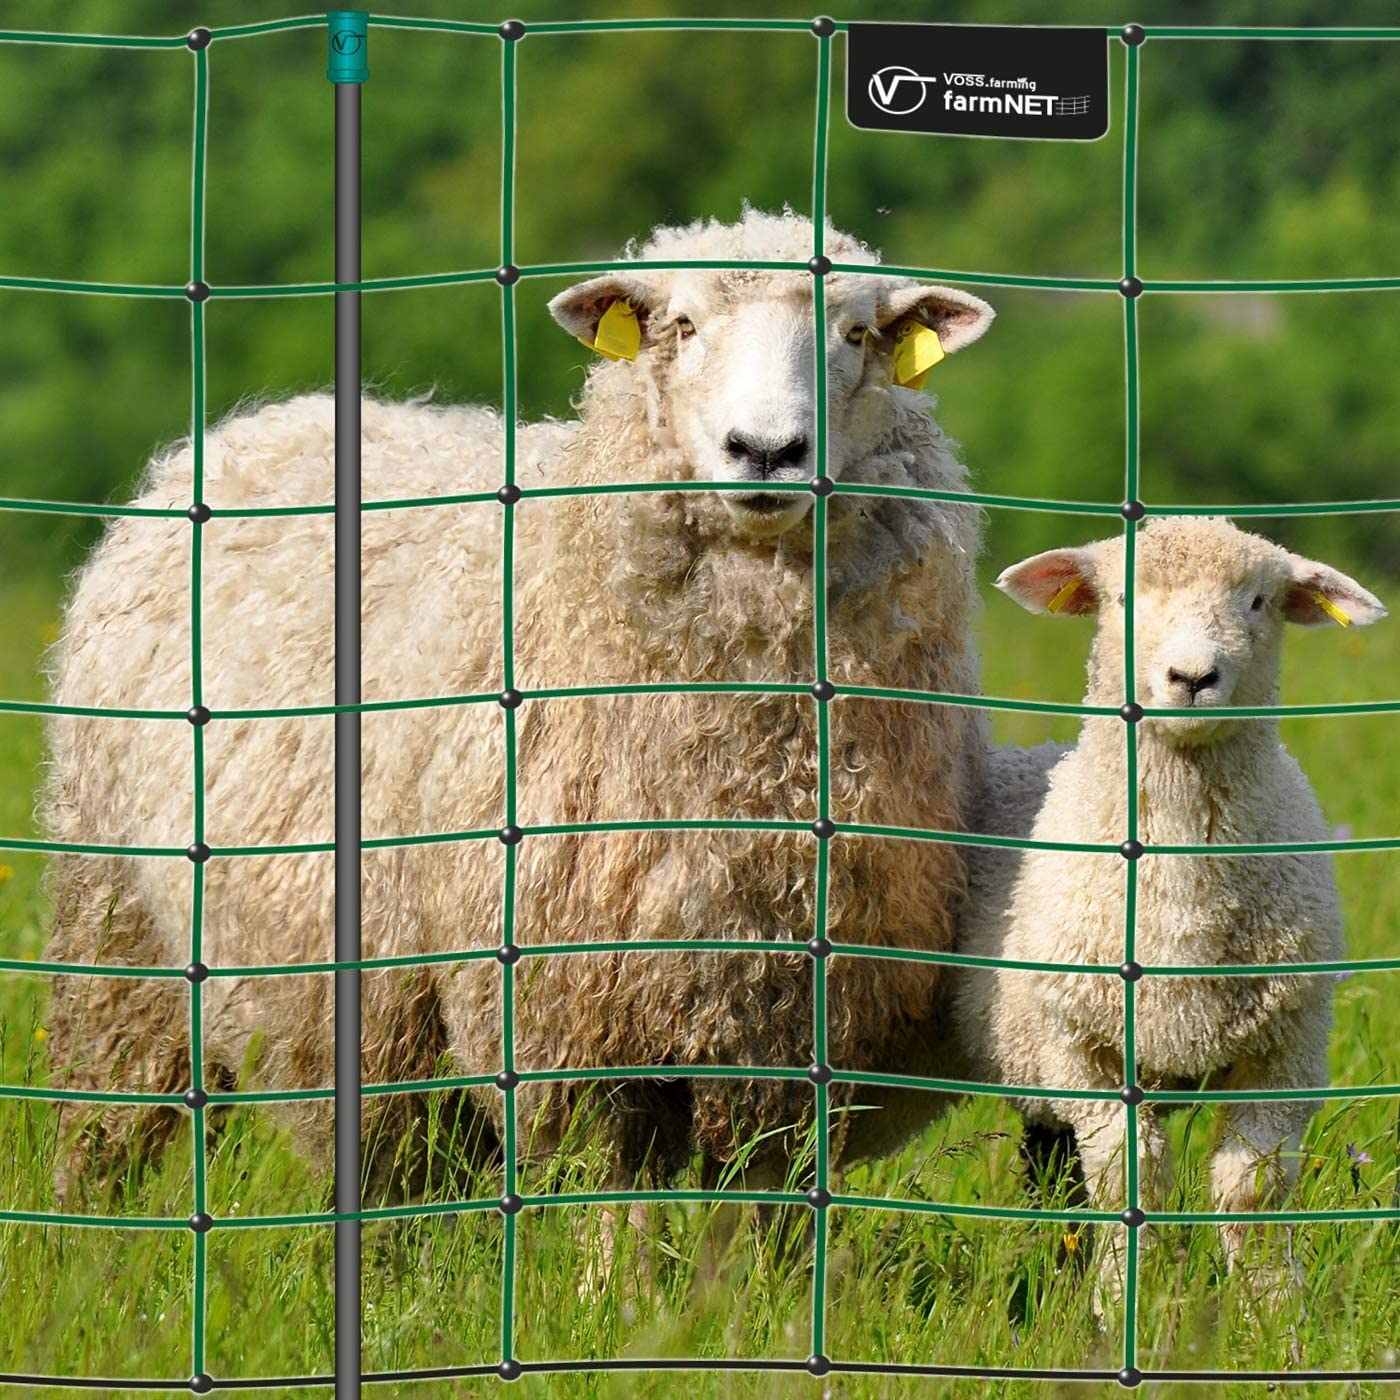 height 90 cm sheep net orange length 50 m VOSS.farming Electric fence netting farmNET for sheep 14 black posts,1spike